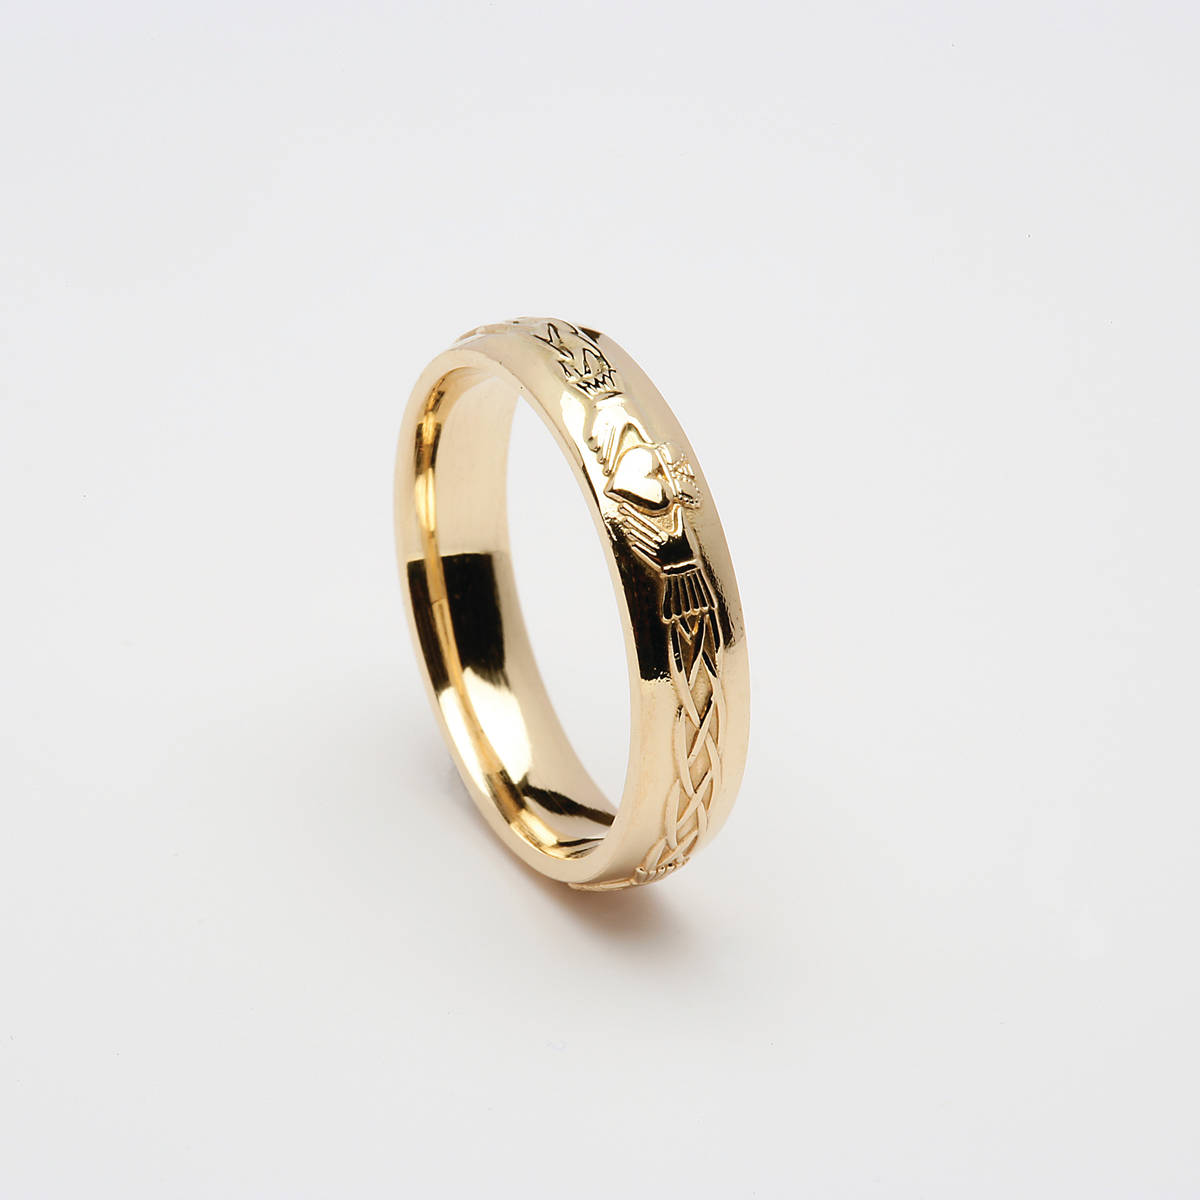 18 carat yellow gold unisex  Celtic Claddagh wedding ring